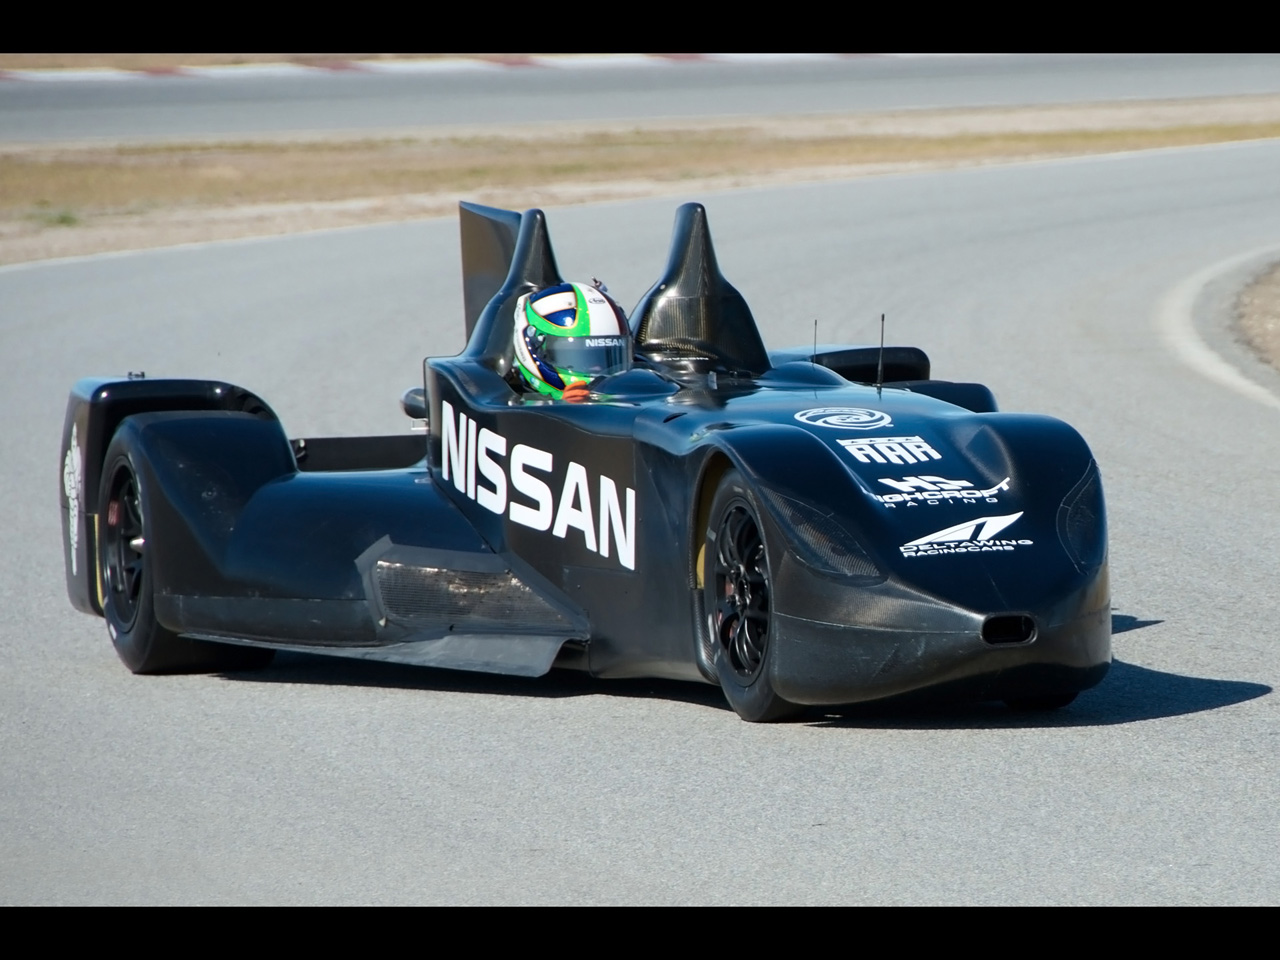 Nissan Deltawing Le Mans Race Car Moving 3 1280x960 Wallpaper 1280x960